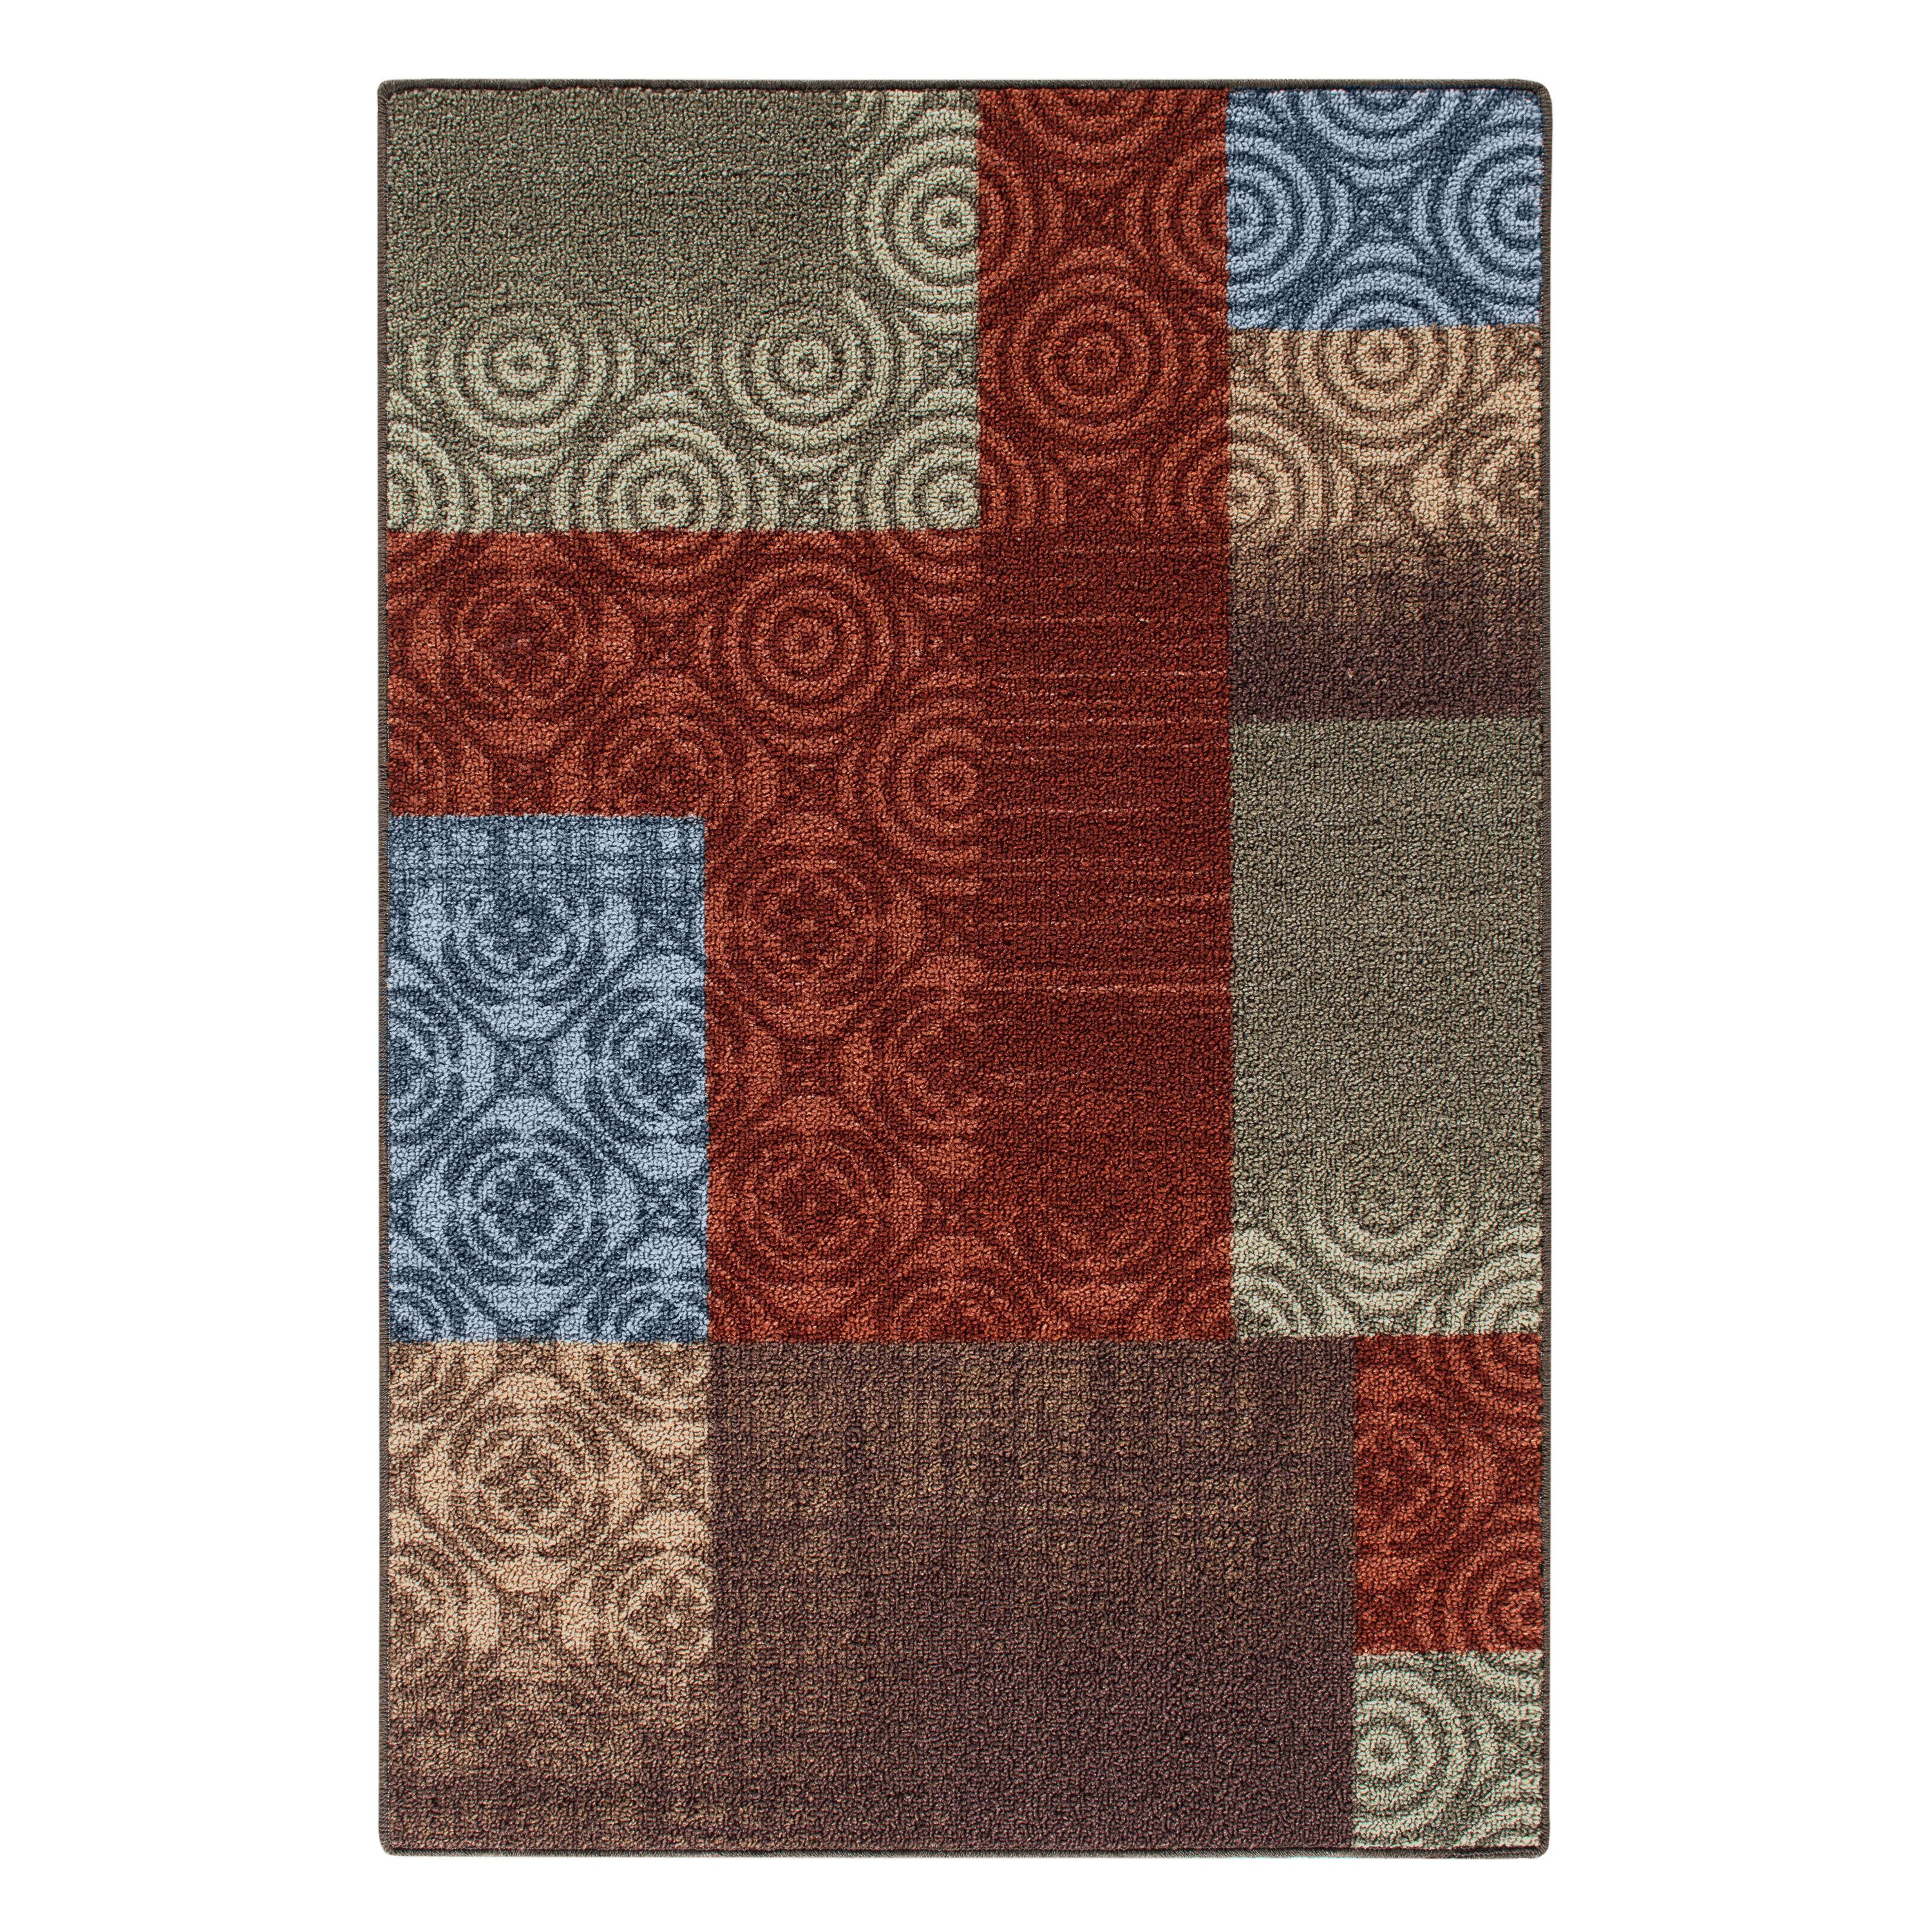 Mainstays Payton Nylon Print Area Rugs or Runner by Maples Industries